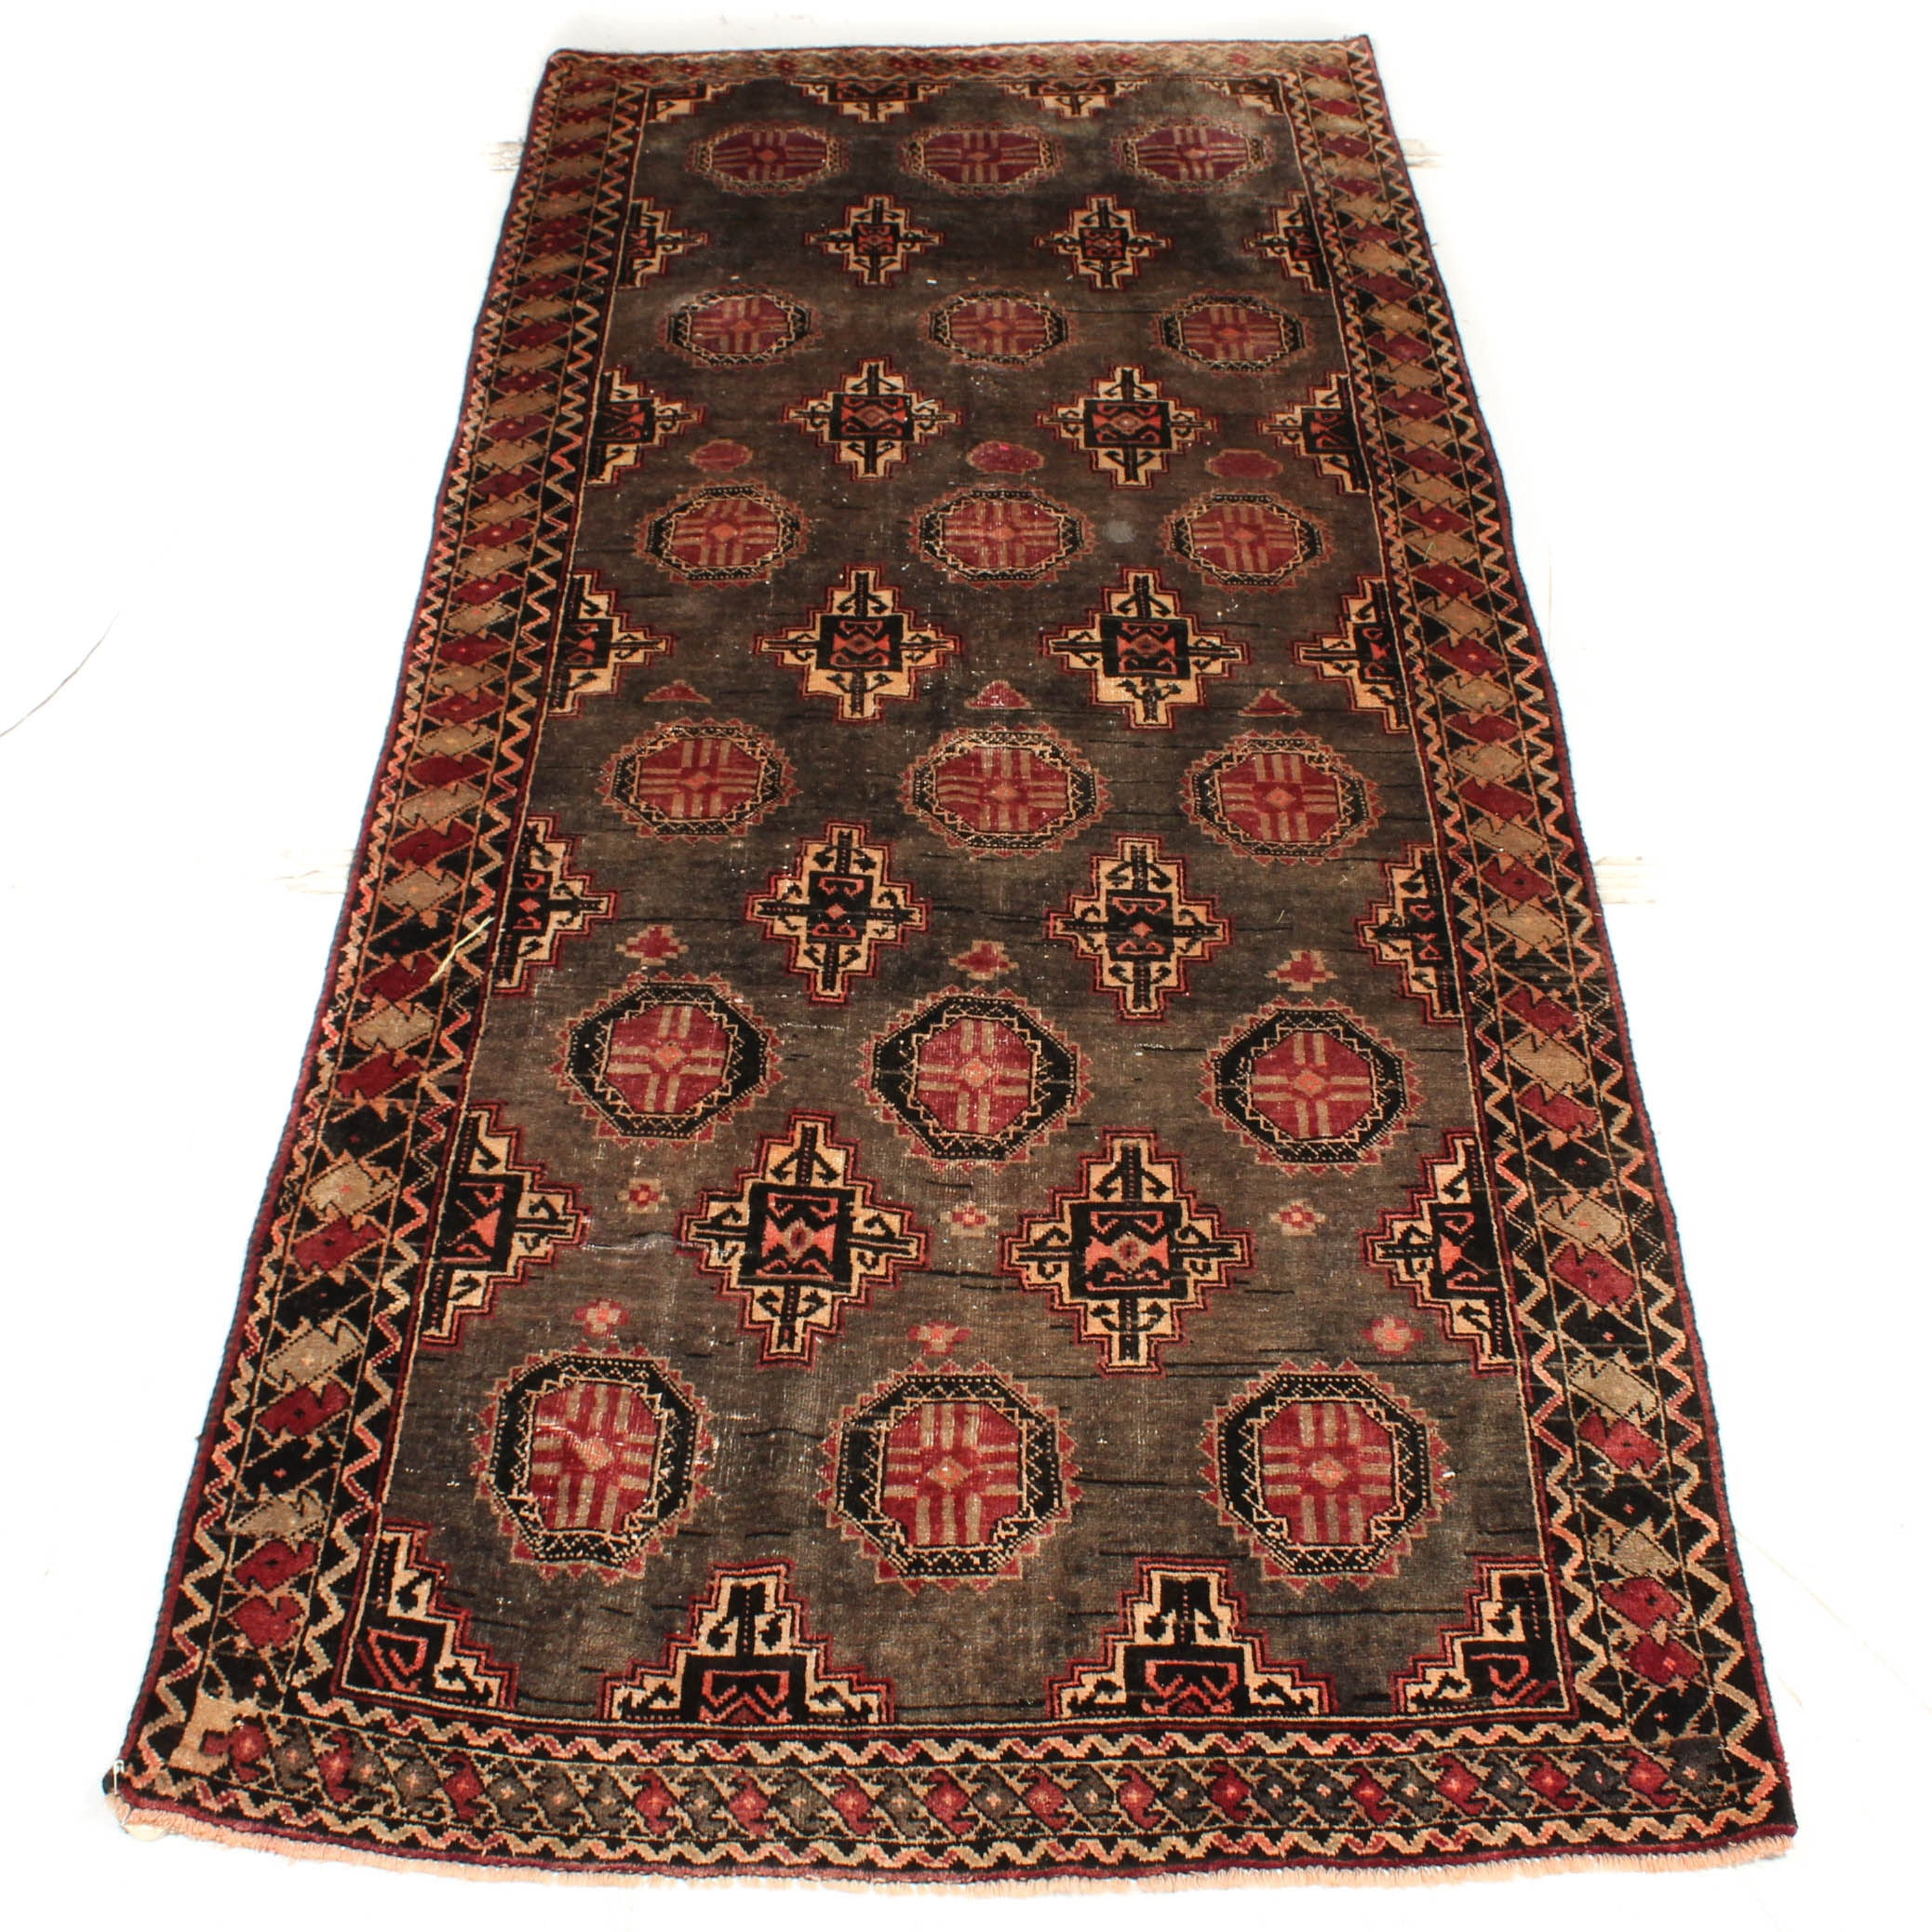 Vintage Hand-Knotted Persian Turkmen Long Rug